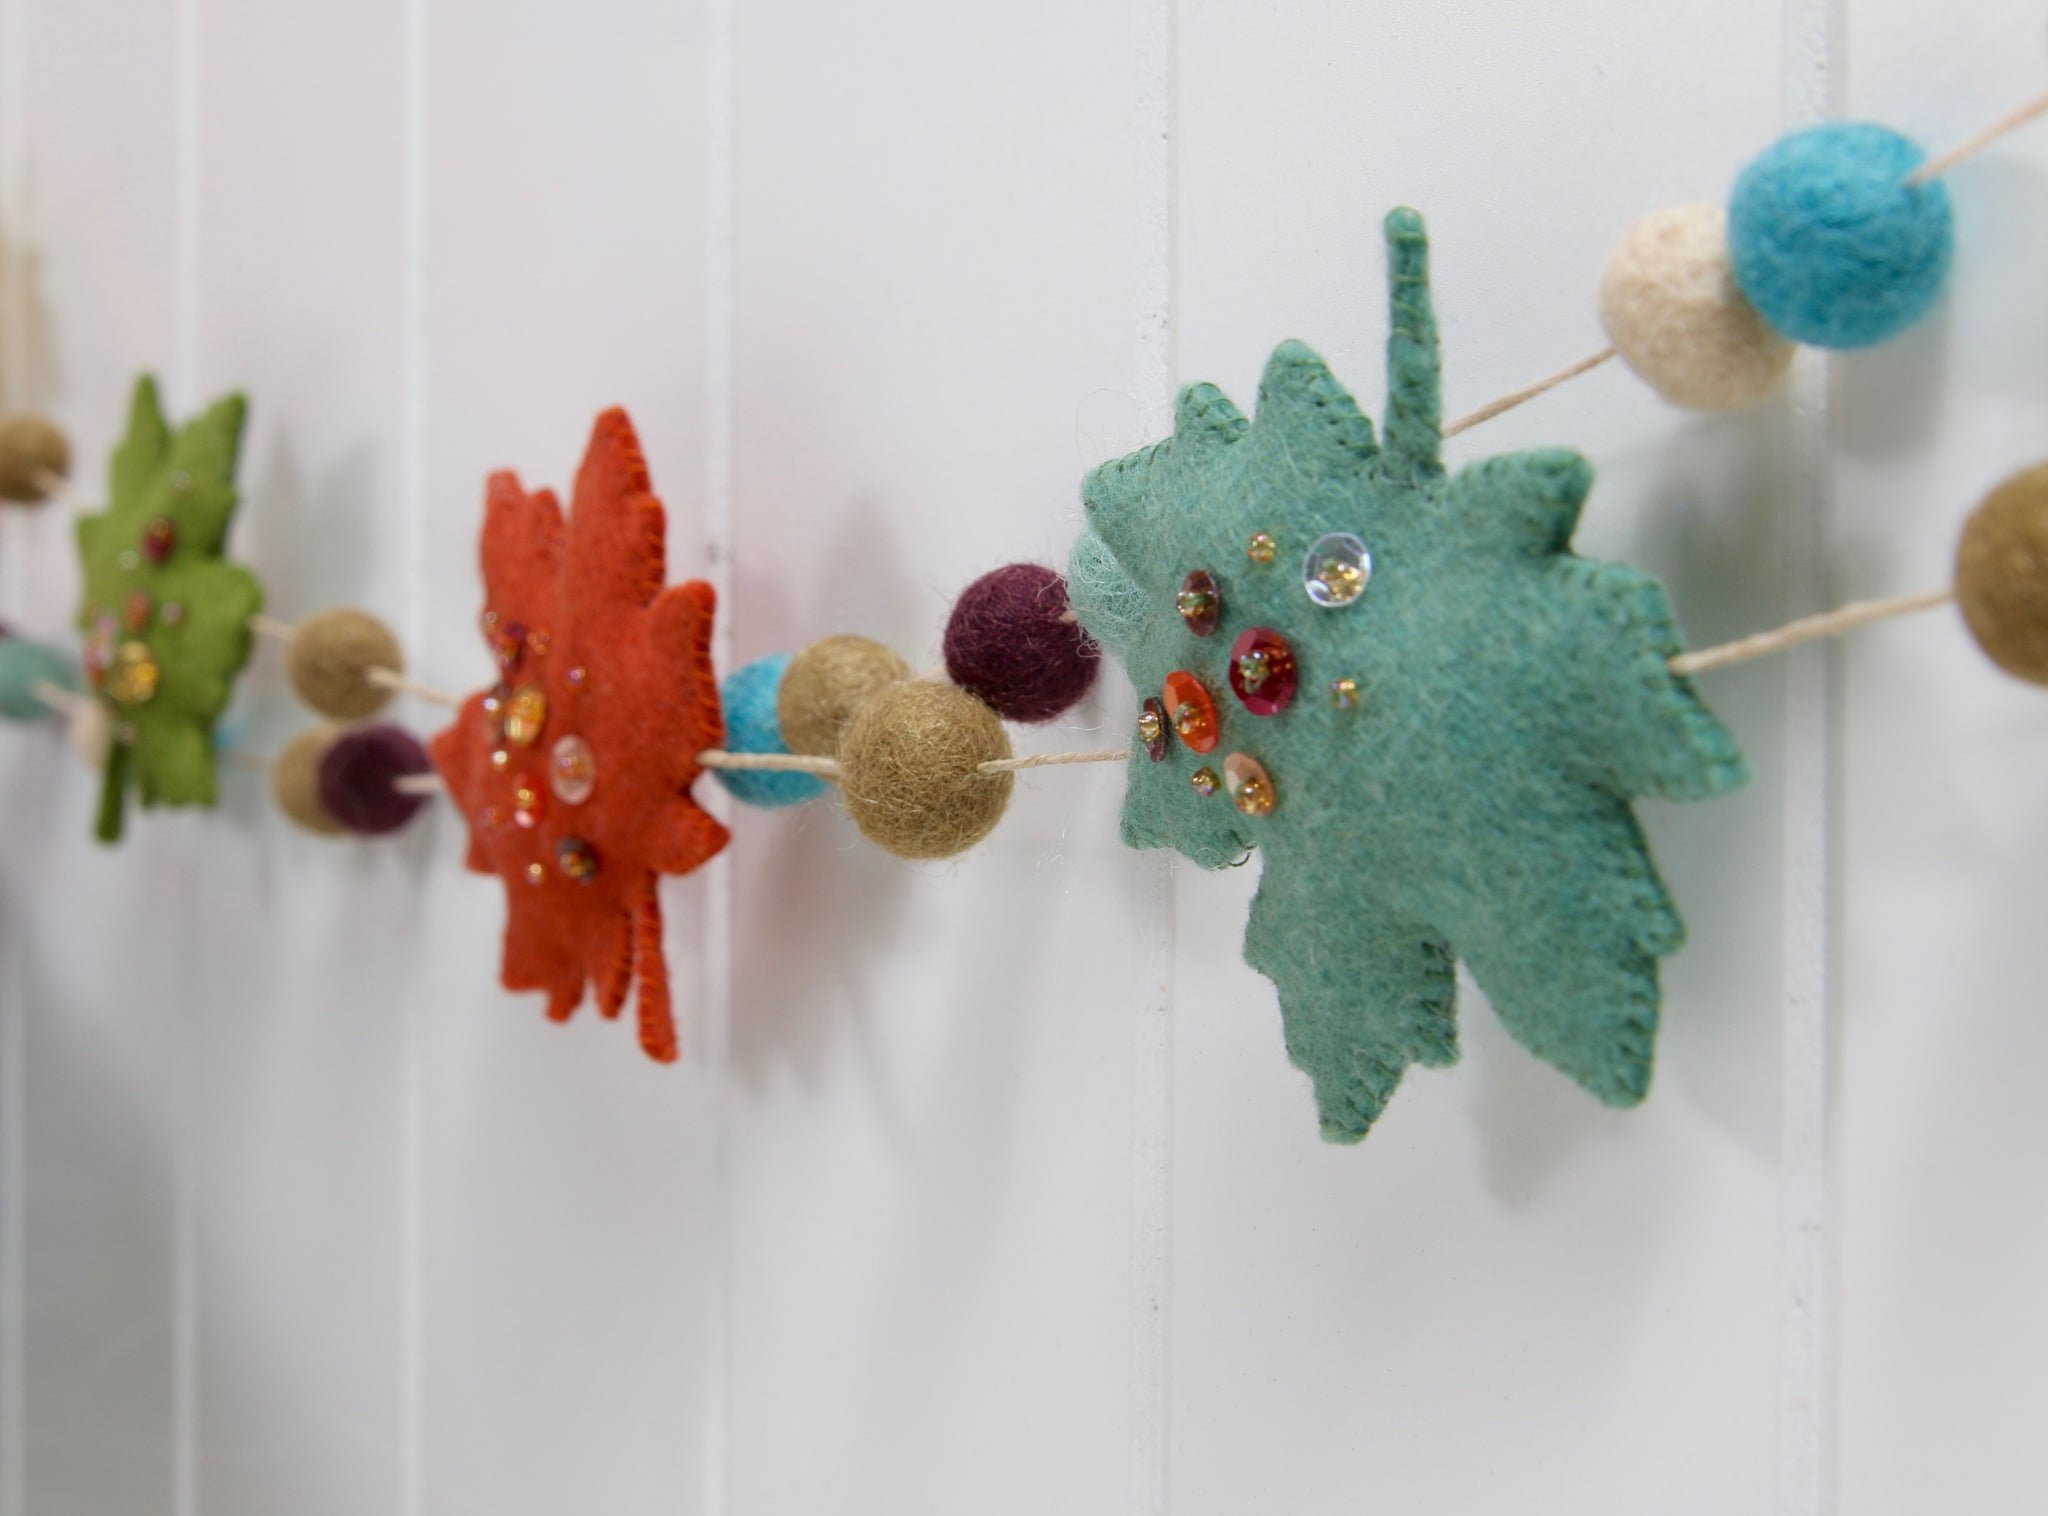 Sequined Felt Fall Leaves With Neat Tangled Benzie Design